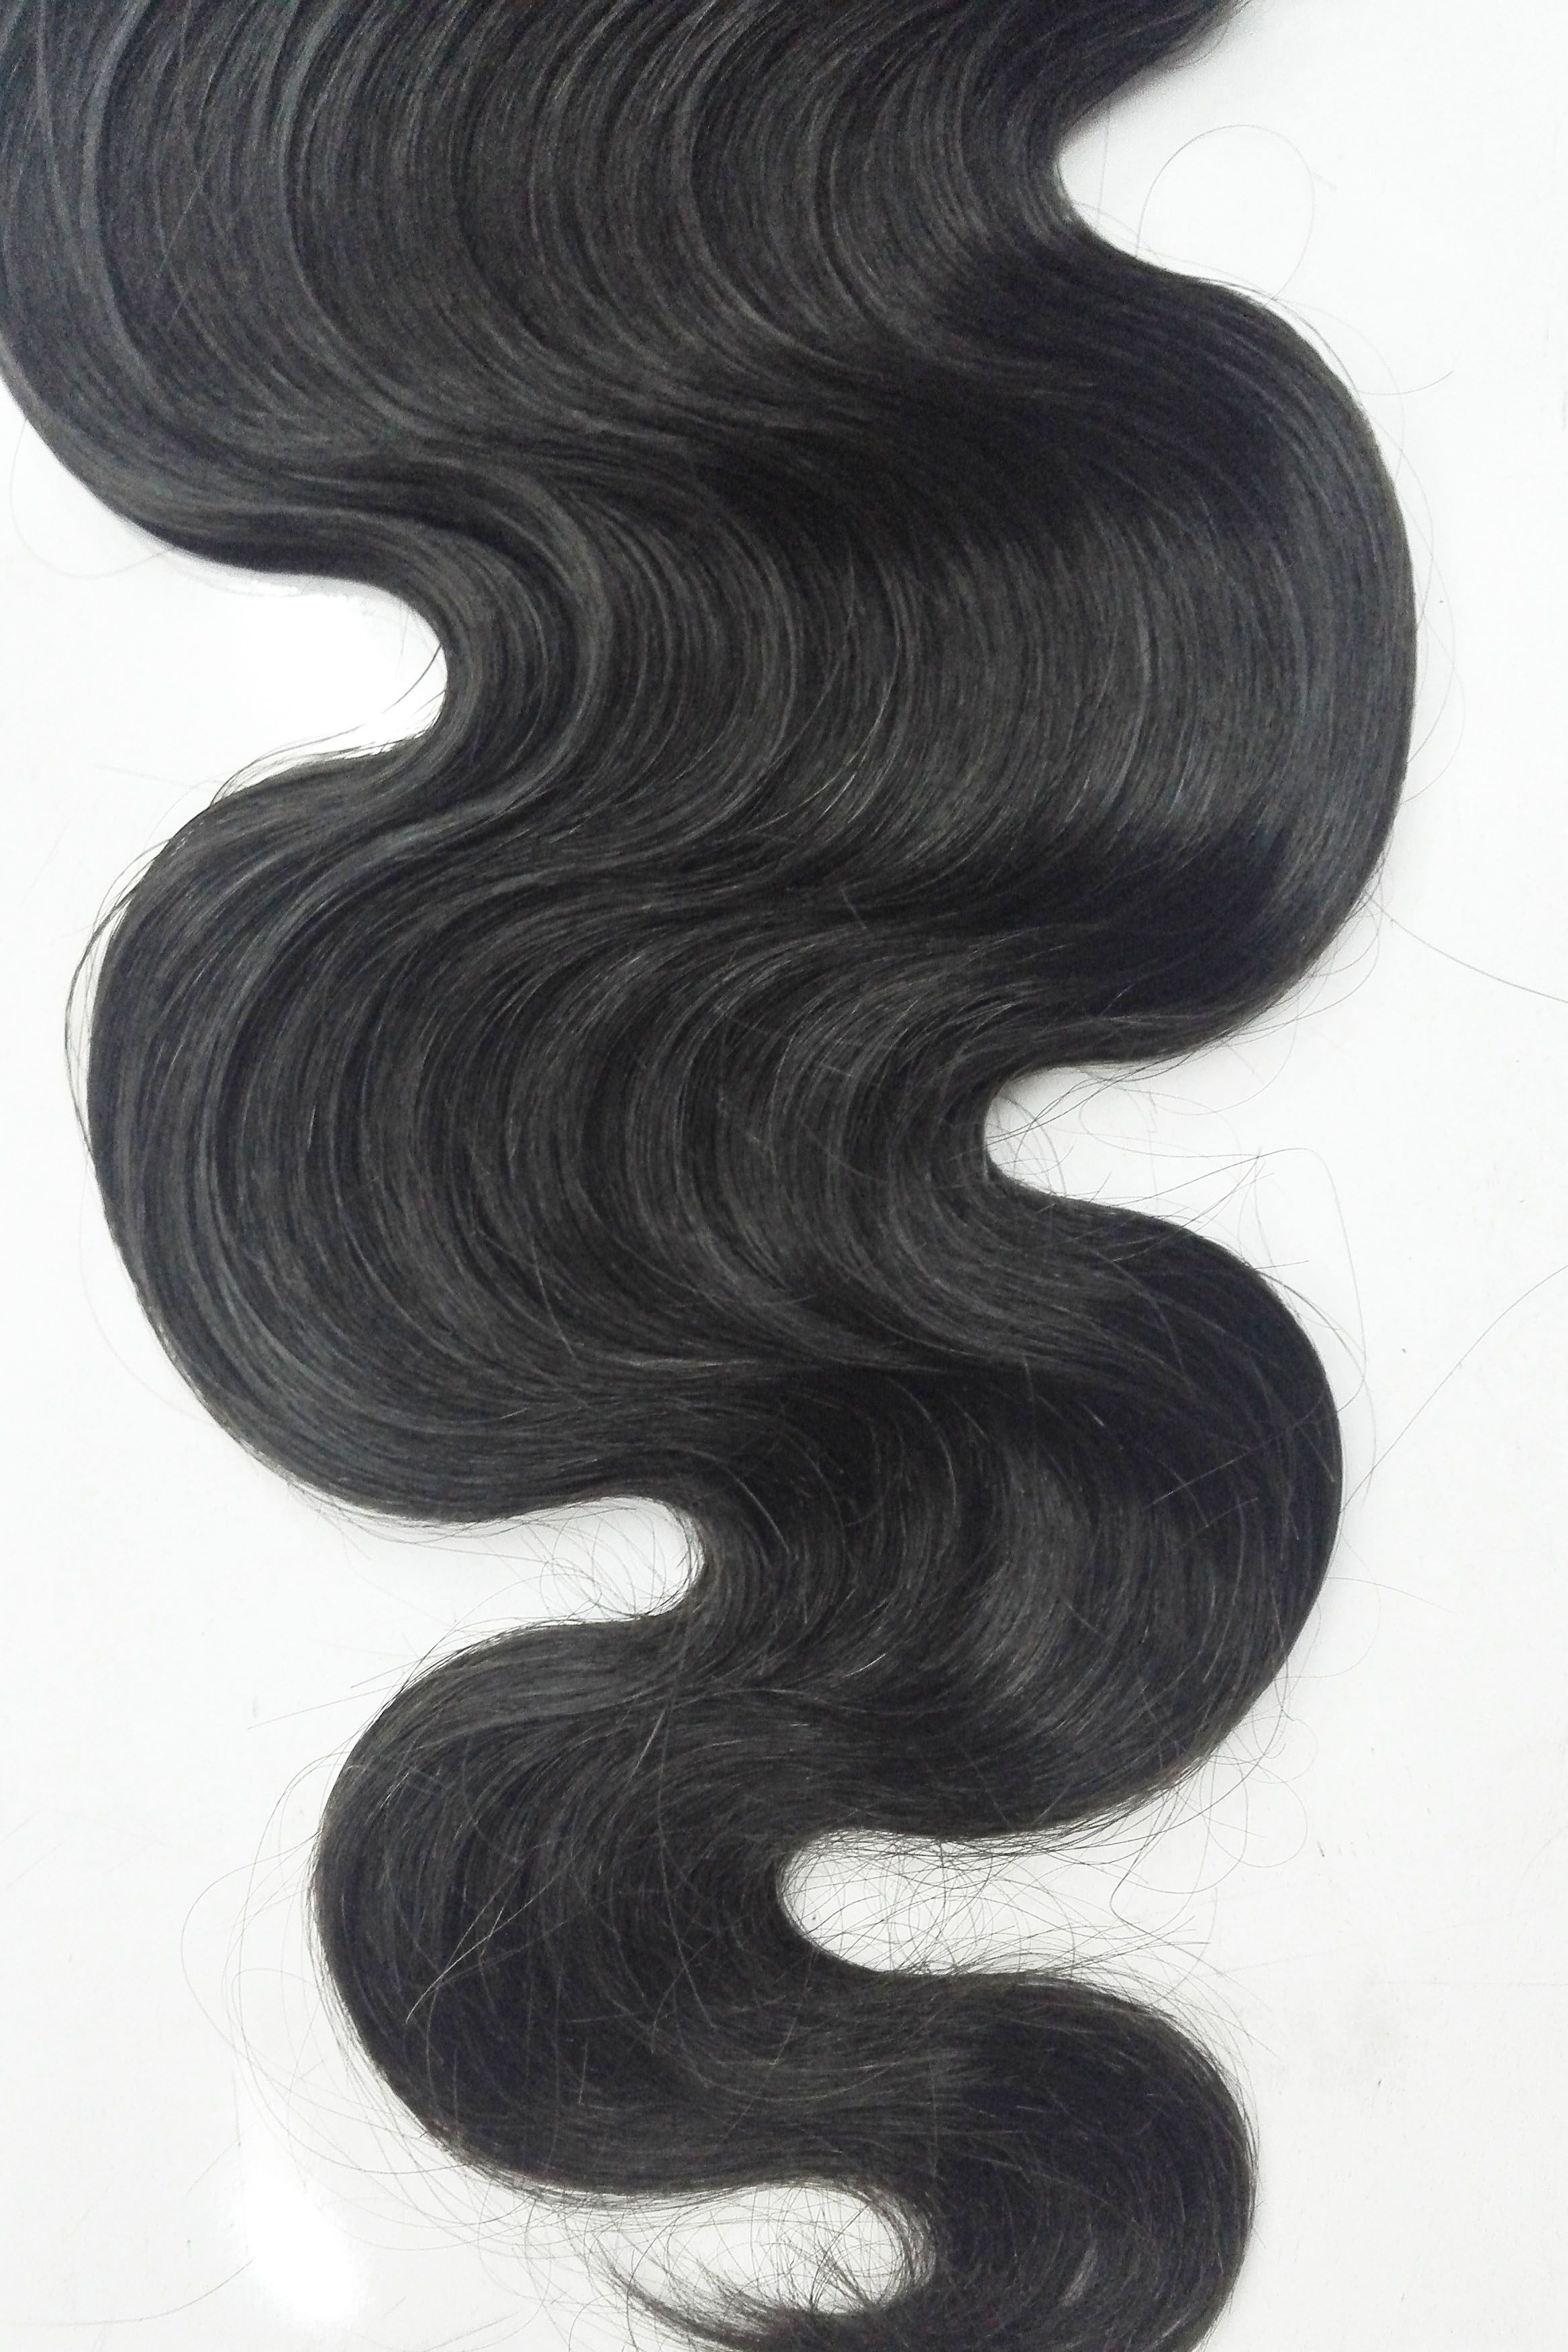 Trendy hairstyle indian hair with high thickness black